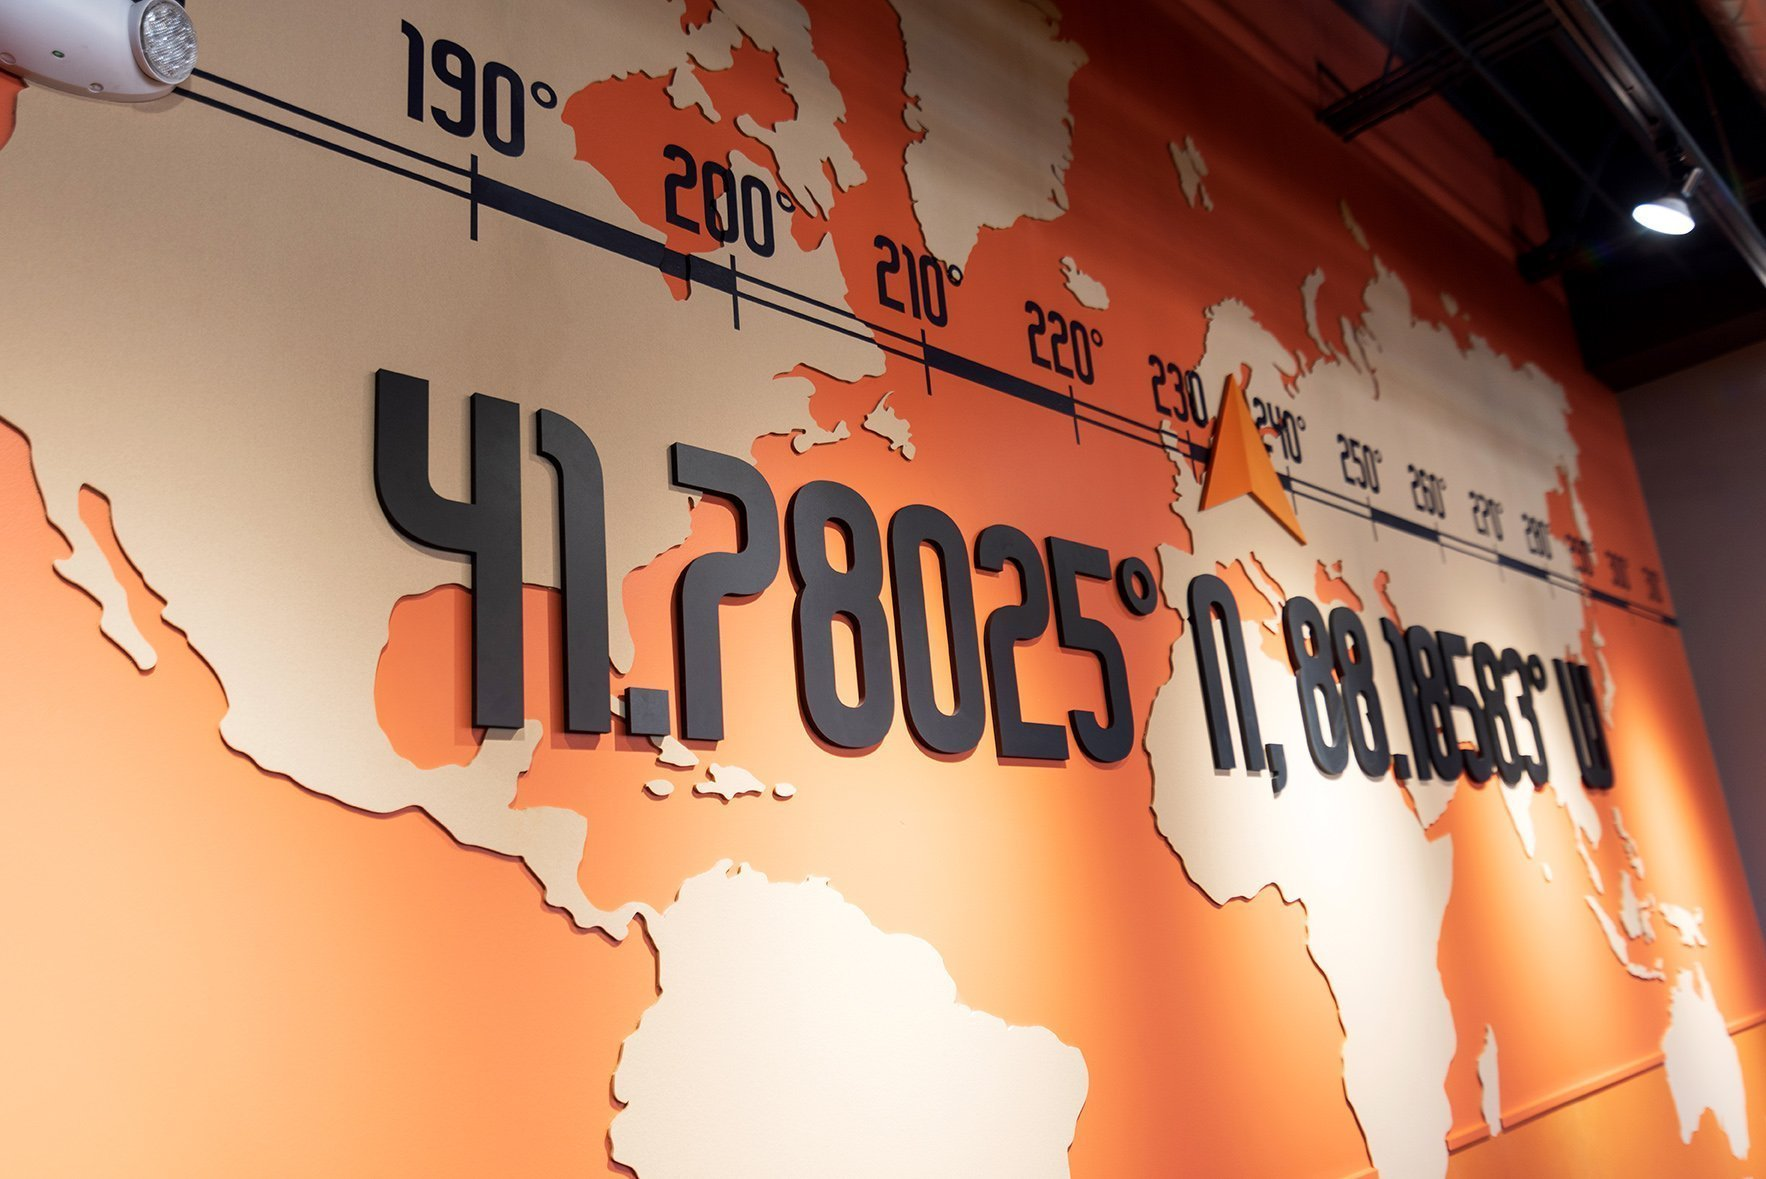 Close up of the orange map wall showing the dimensional wall graphic applications